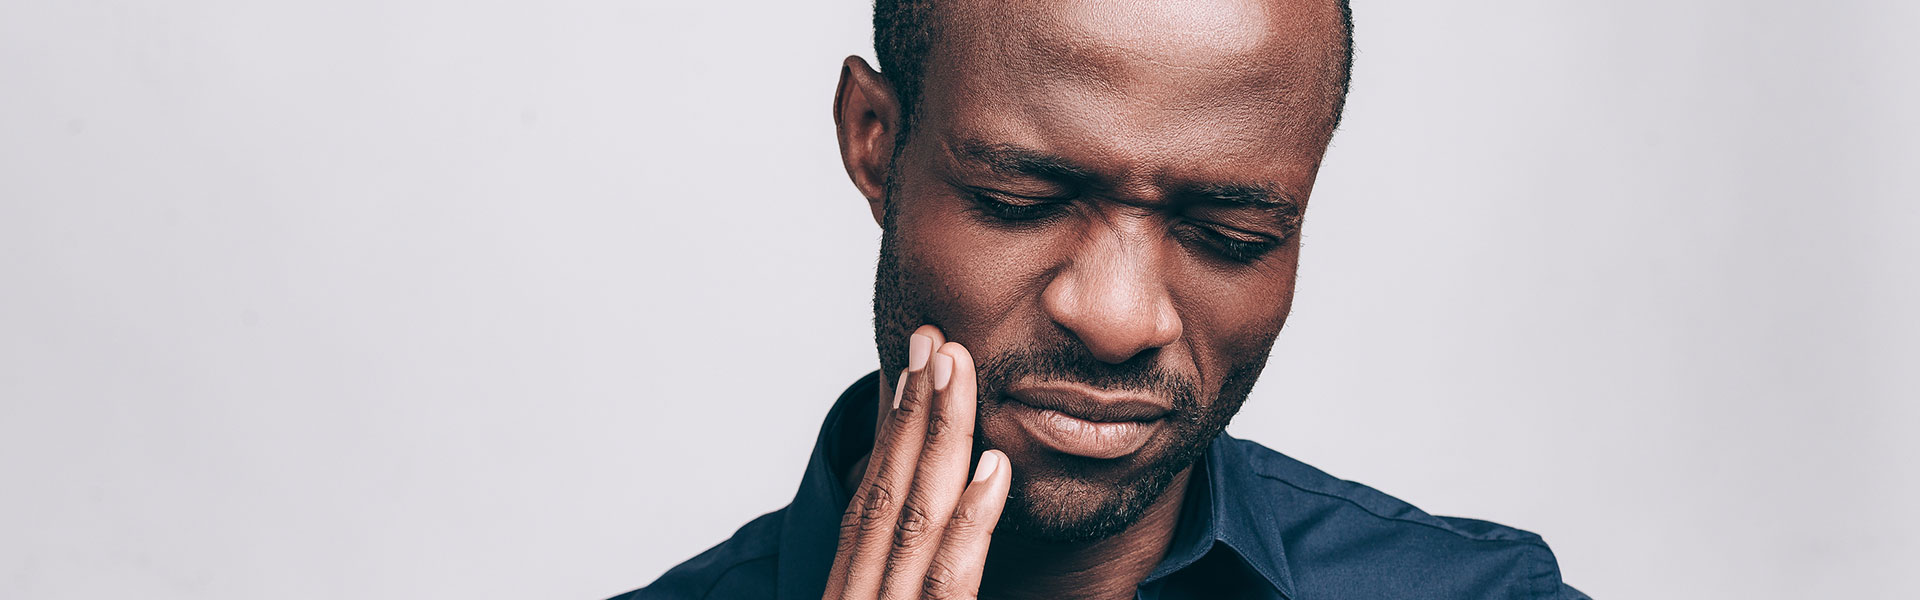 Afro-American man suffering from tooth pain